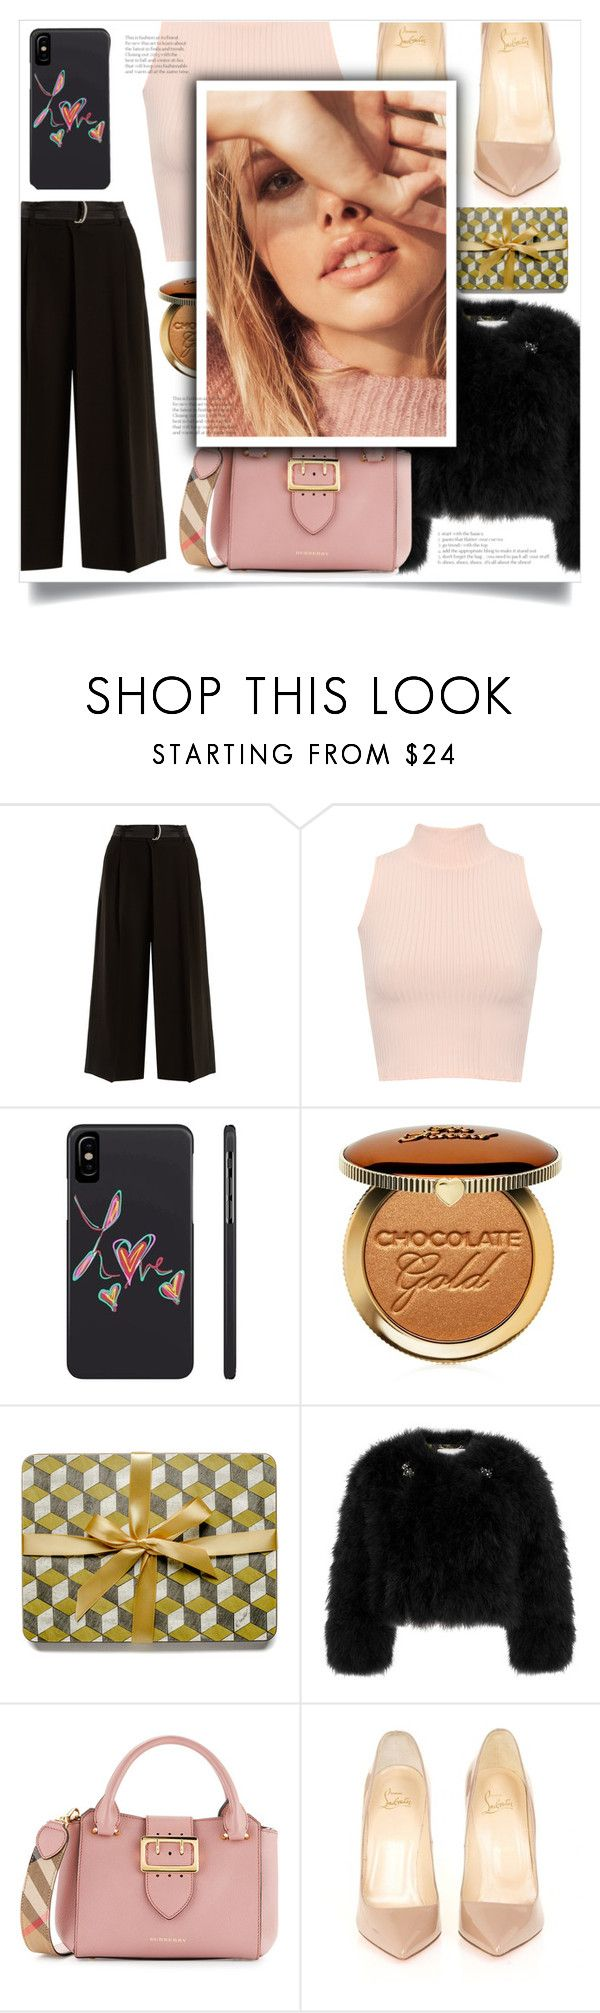 """Meet the family"" by jane-cupacake ❤ liked on Polyvore featuring Weekend Max Mara, WearAll, Too Faced Cosmetics, Erdem, Burberry and Christian Louboutin"